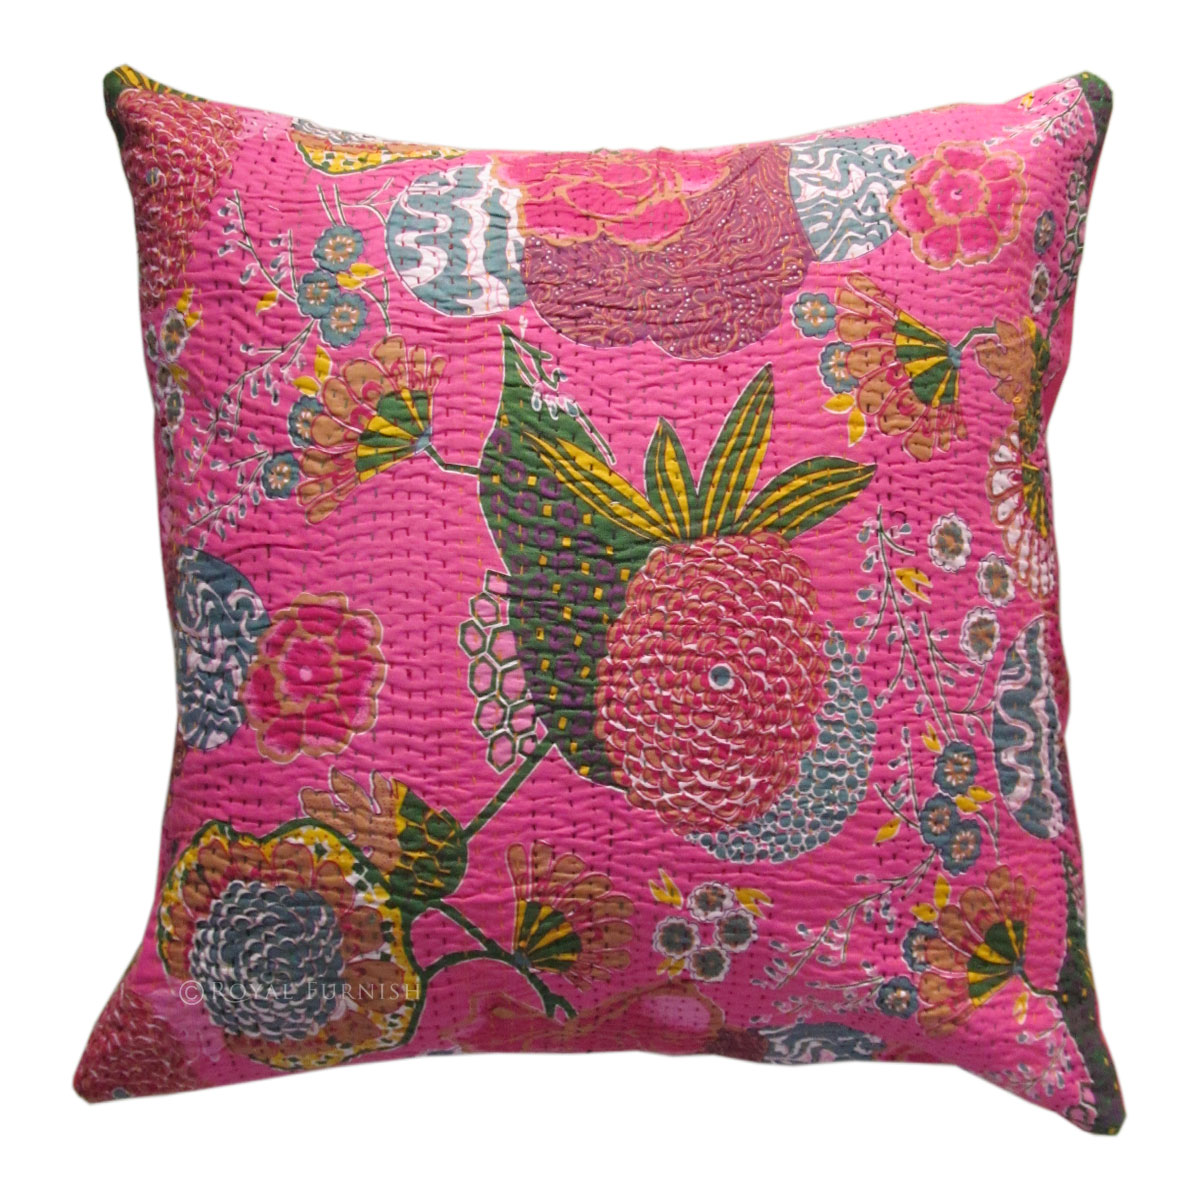 cotton sofa covers india sleeper for sale cheap 24 quot pink color indian kantha thread floral cushion